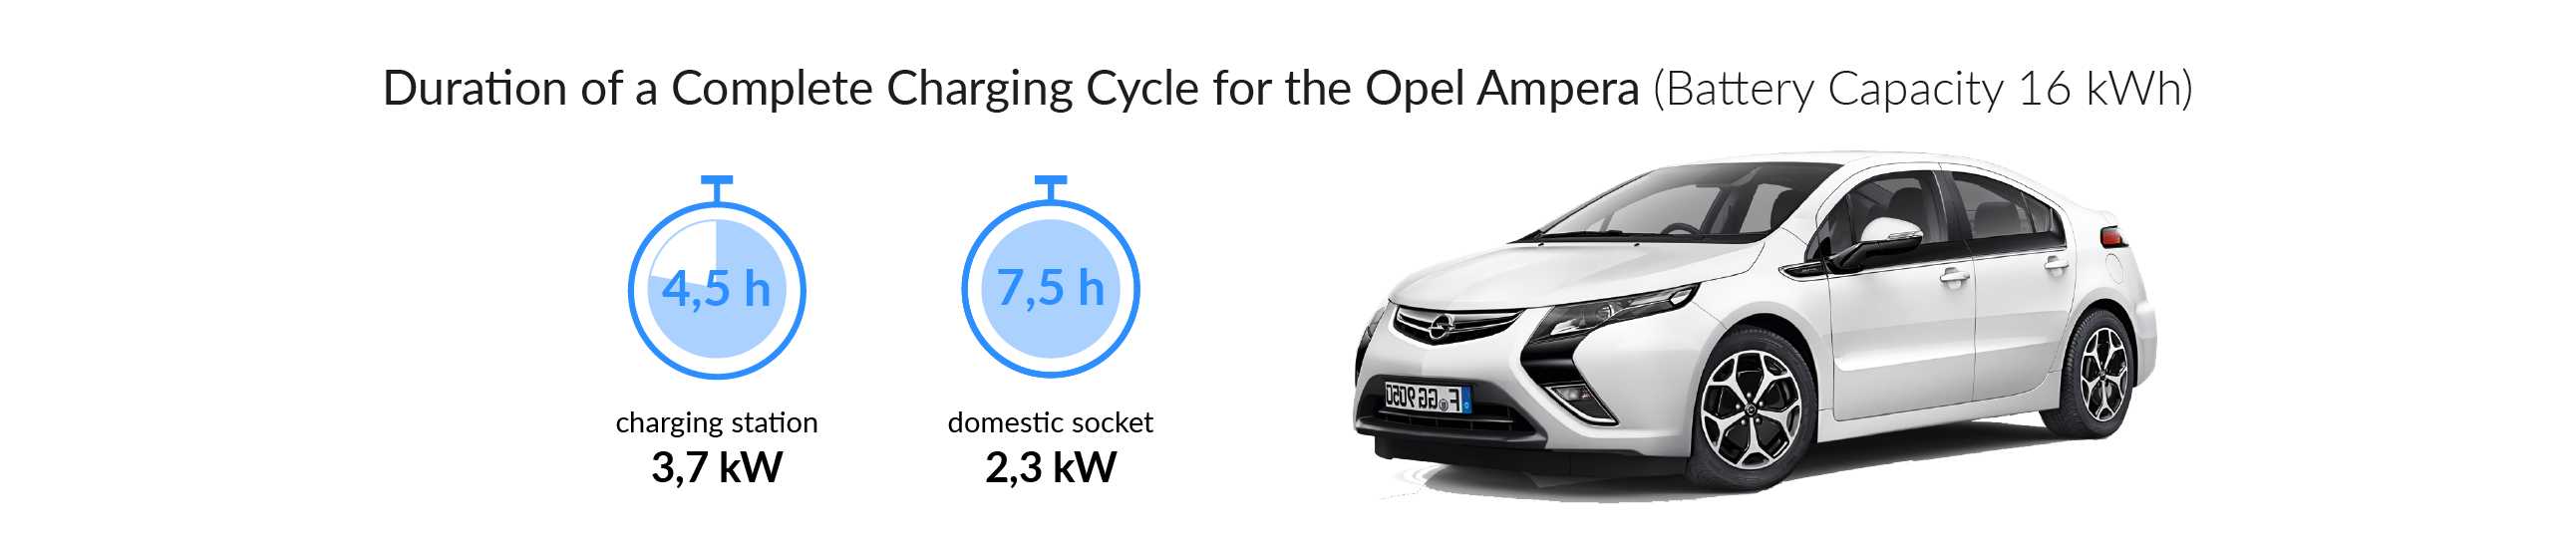 Charging time of the Opel Ampera